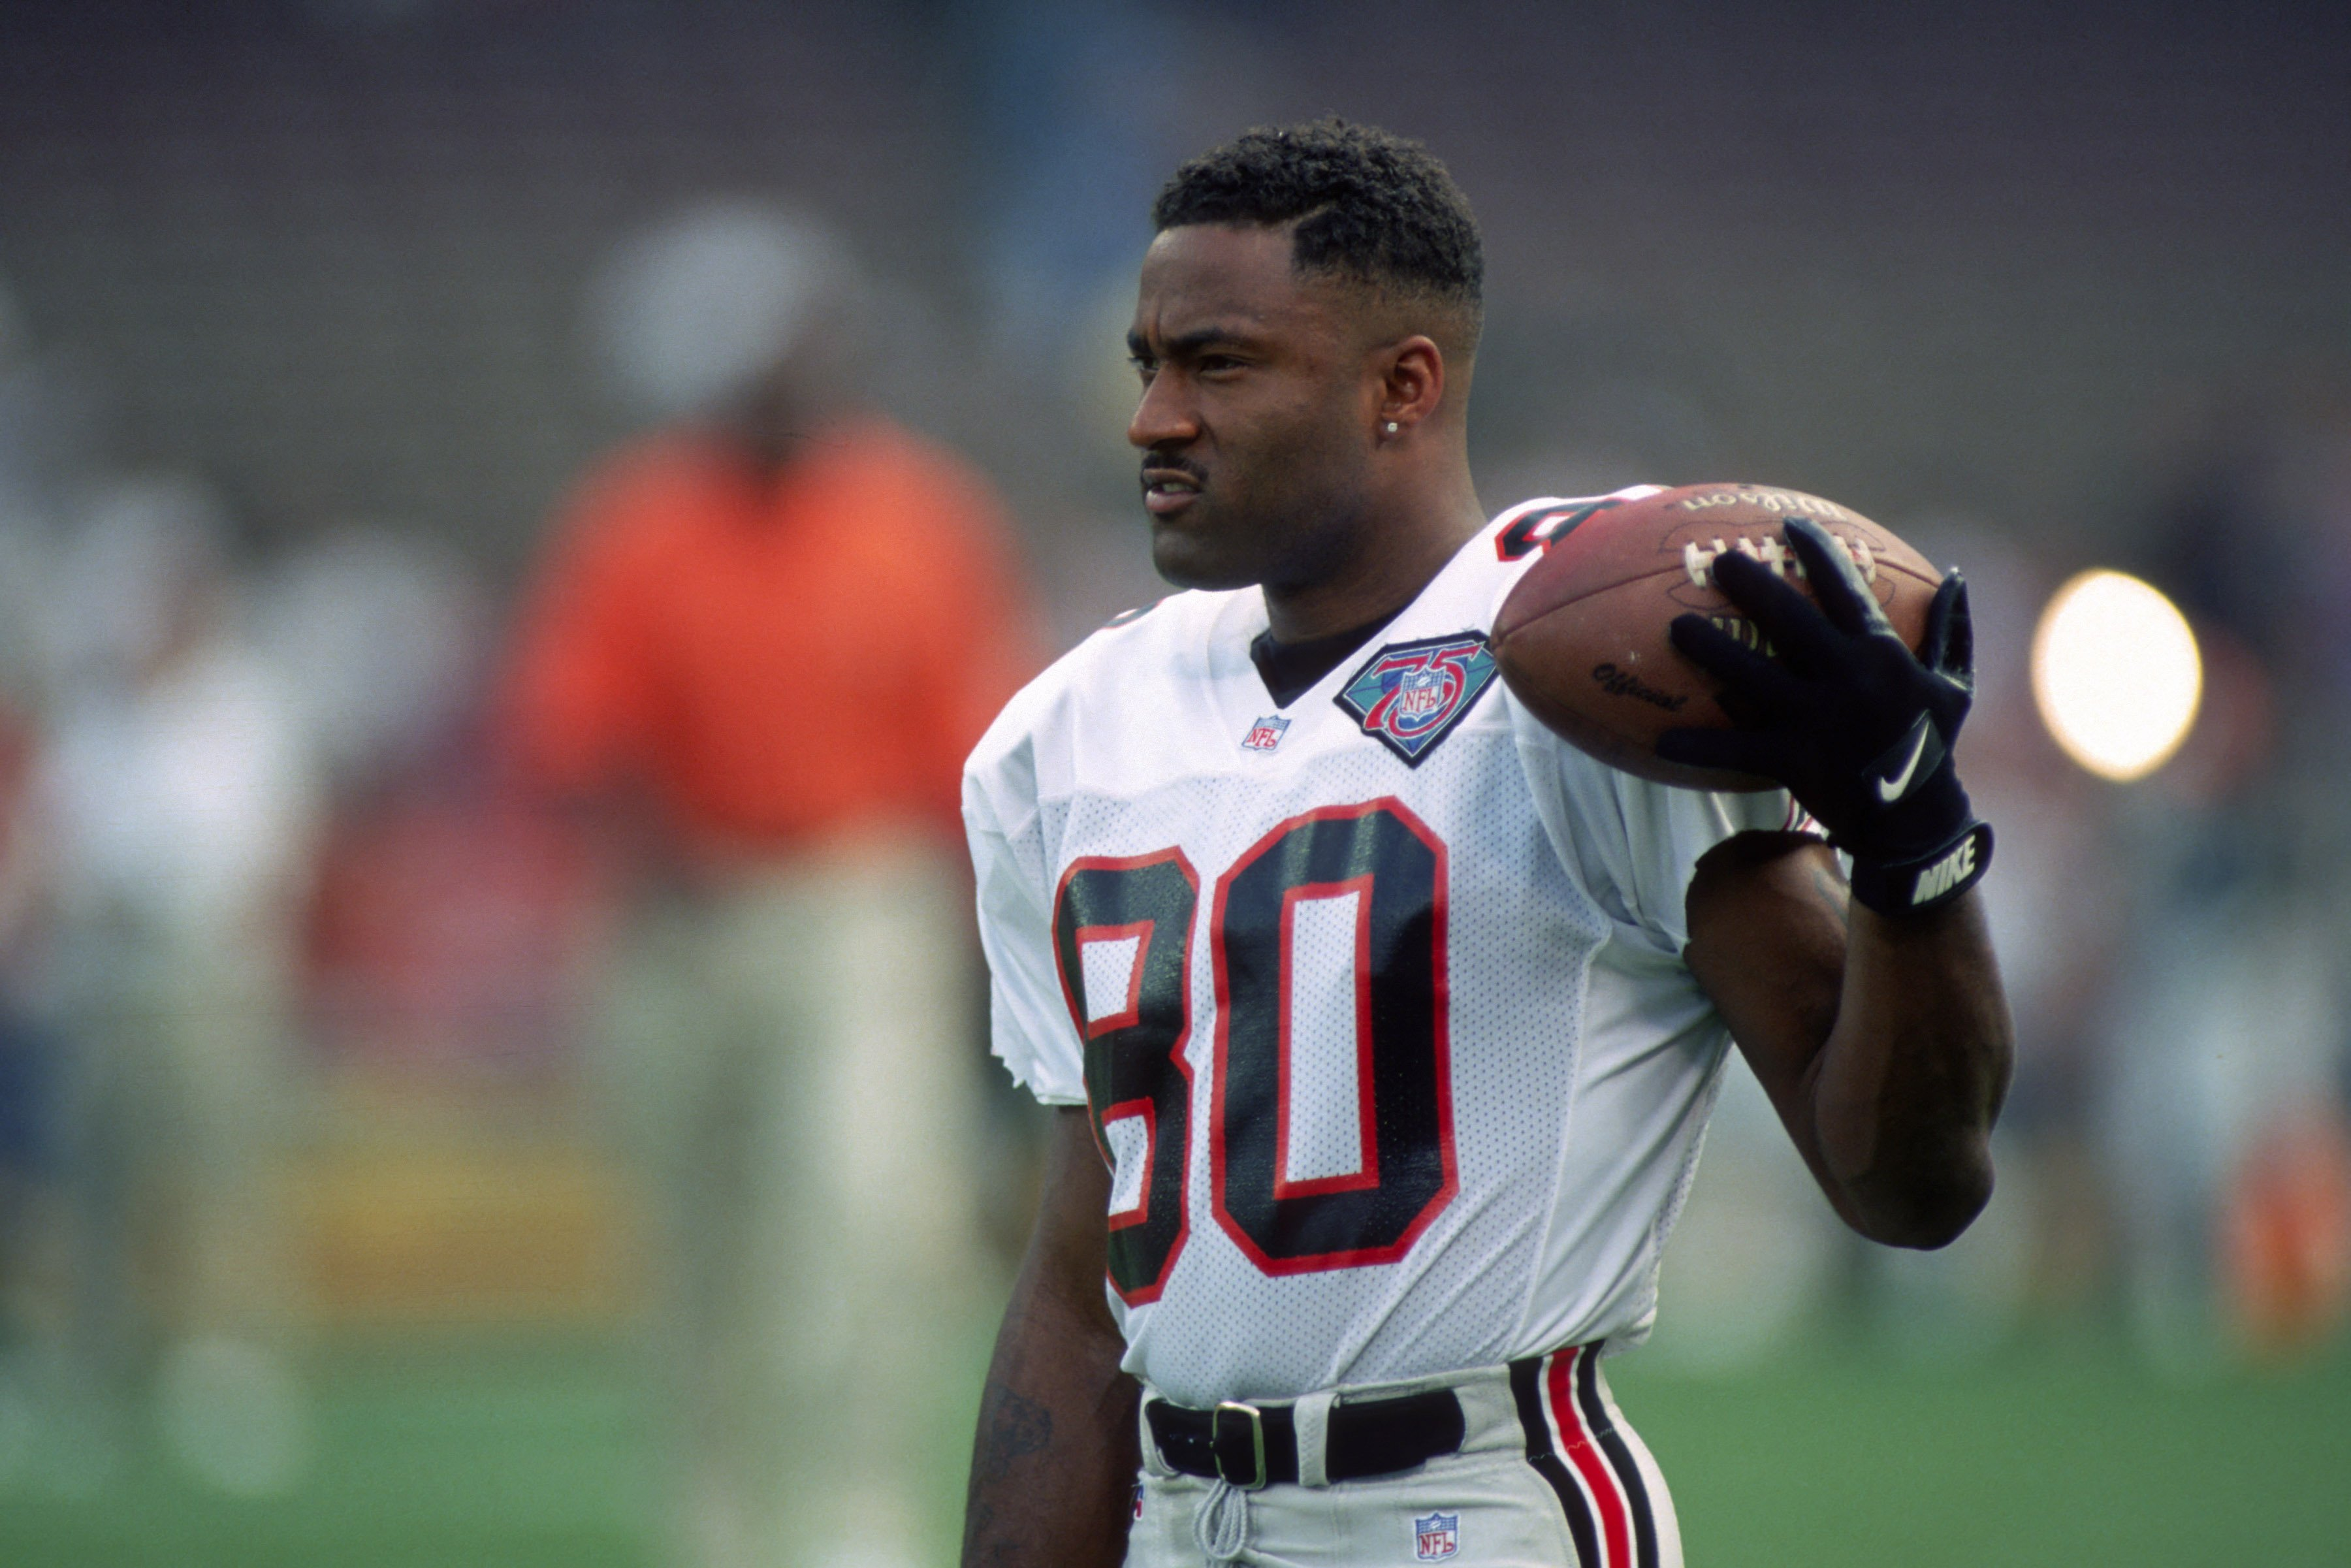 Andre Rison #80 of the Atlanta Falcons looks on from the field during pregame warmup prior to a preseason game against the Cleveland Browns at Cleveland Browns Stadium on August 19, 1994| Photo: Getty Images